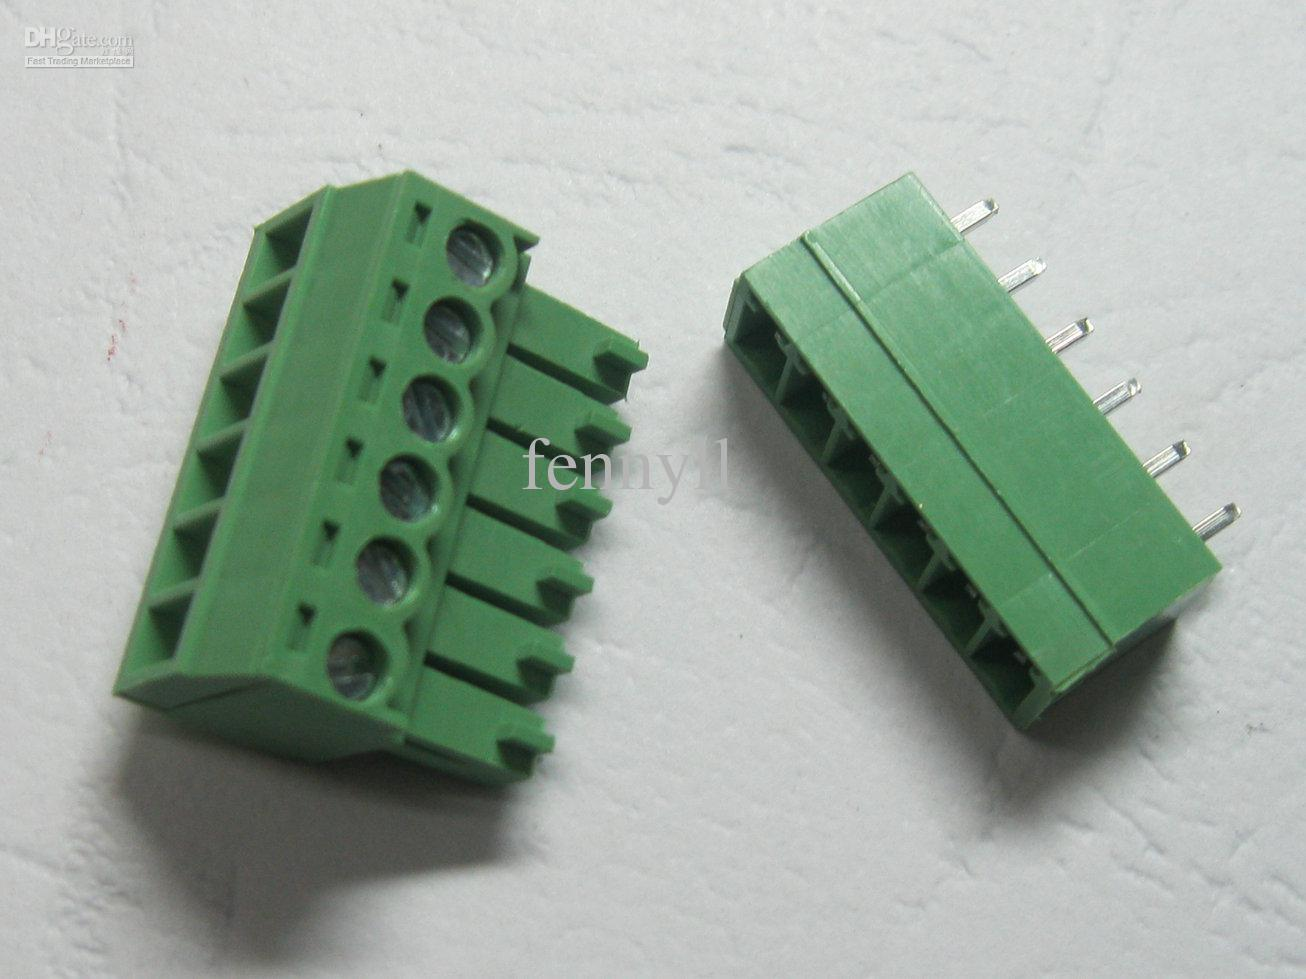 Green 6pin 3.5mm Screw Terminal Block Connector Pluggable Type High Quality HOT Sale